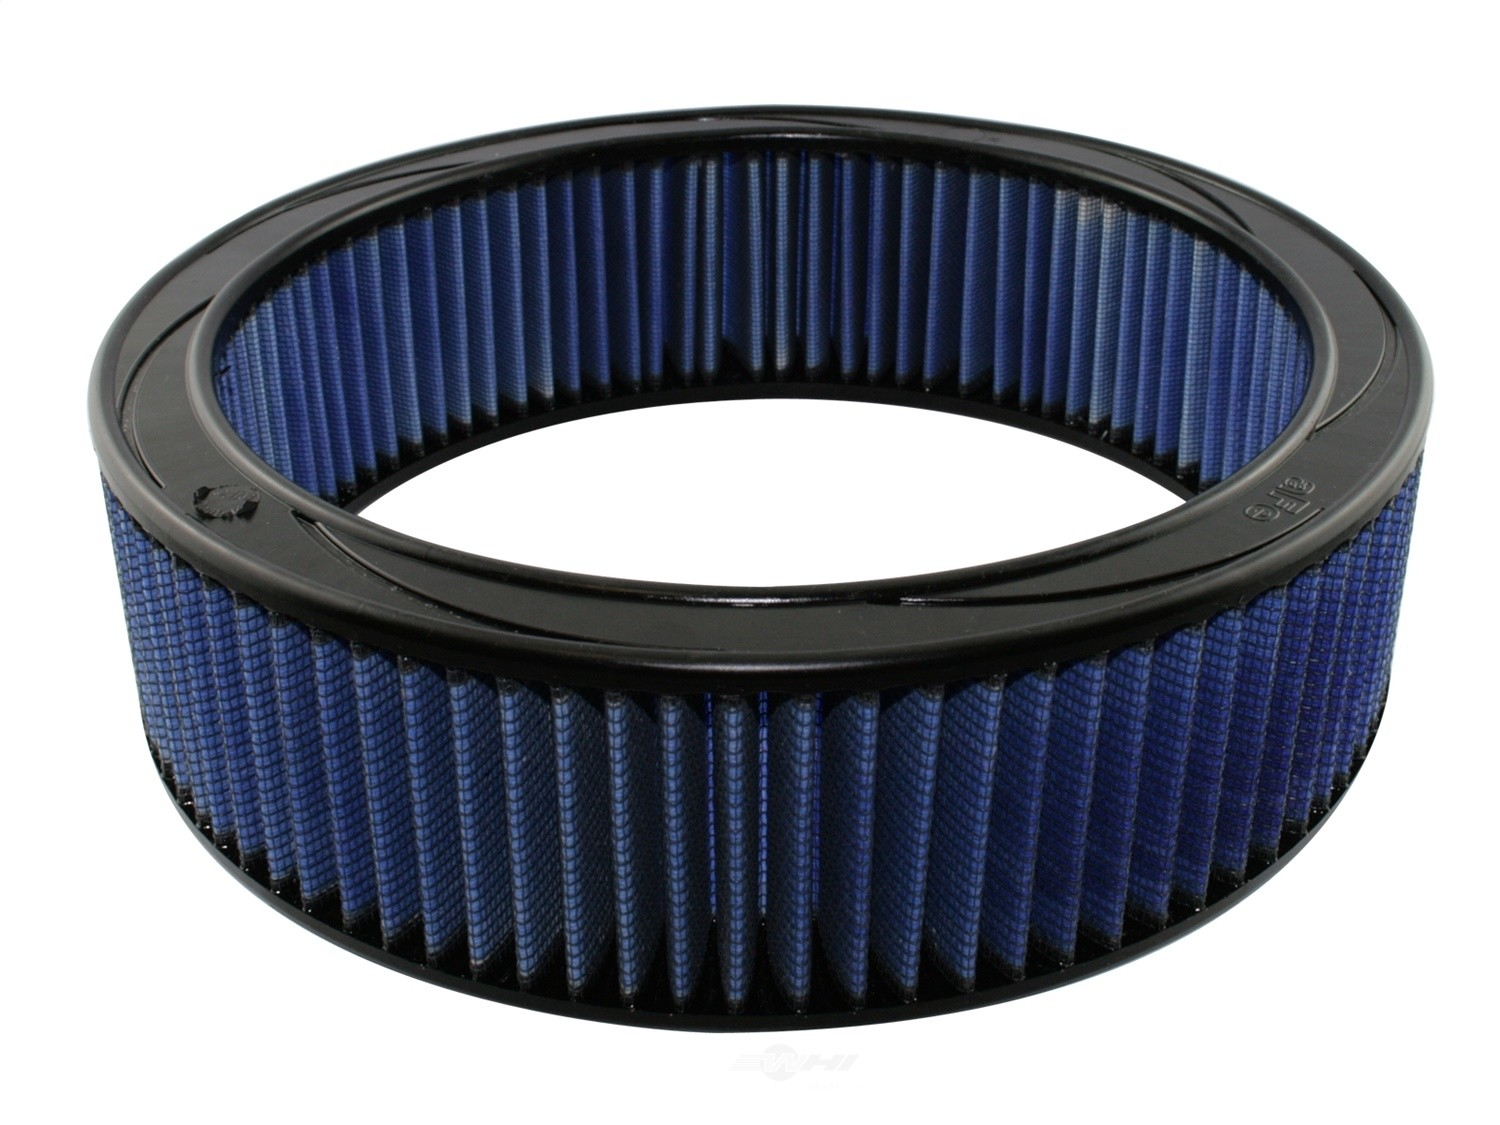 AFE FILTERS - MagnumFlow OE Replacement Pro 5R Air Filter - A5F 10-10001